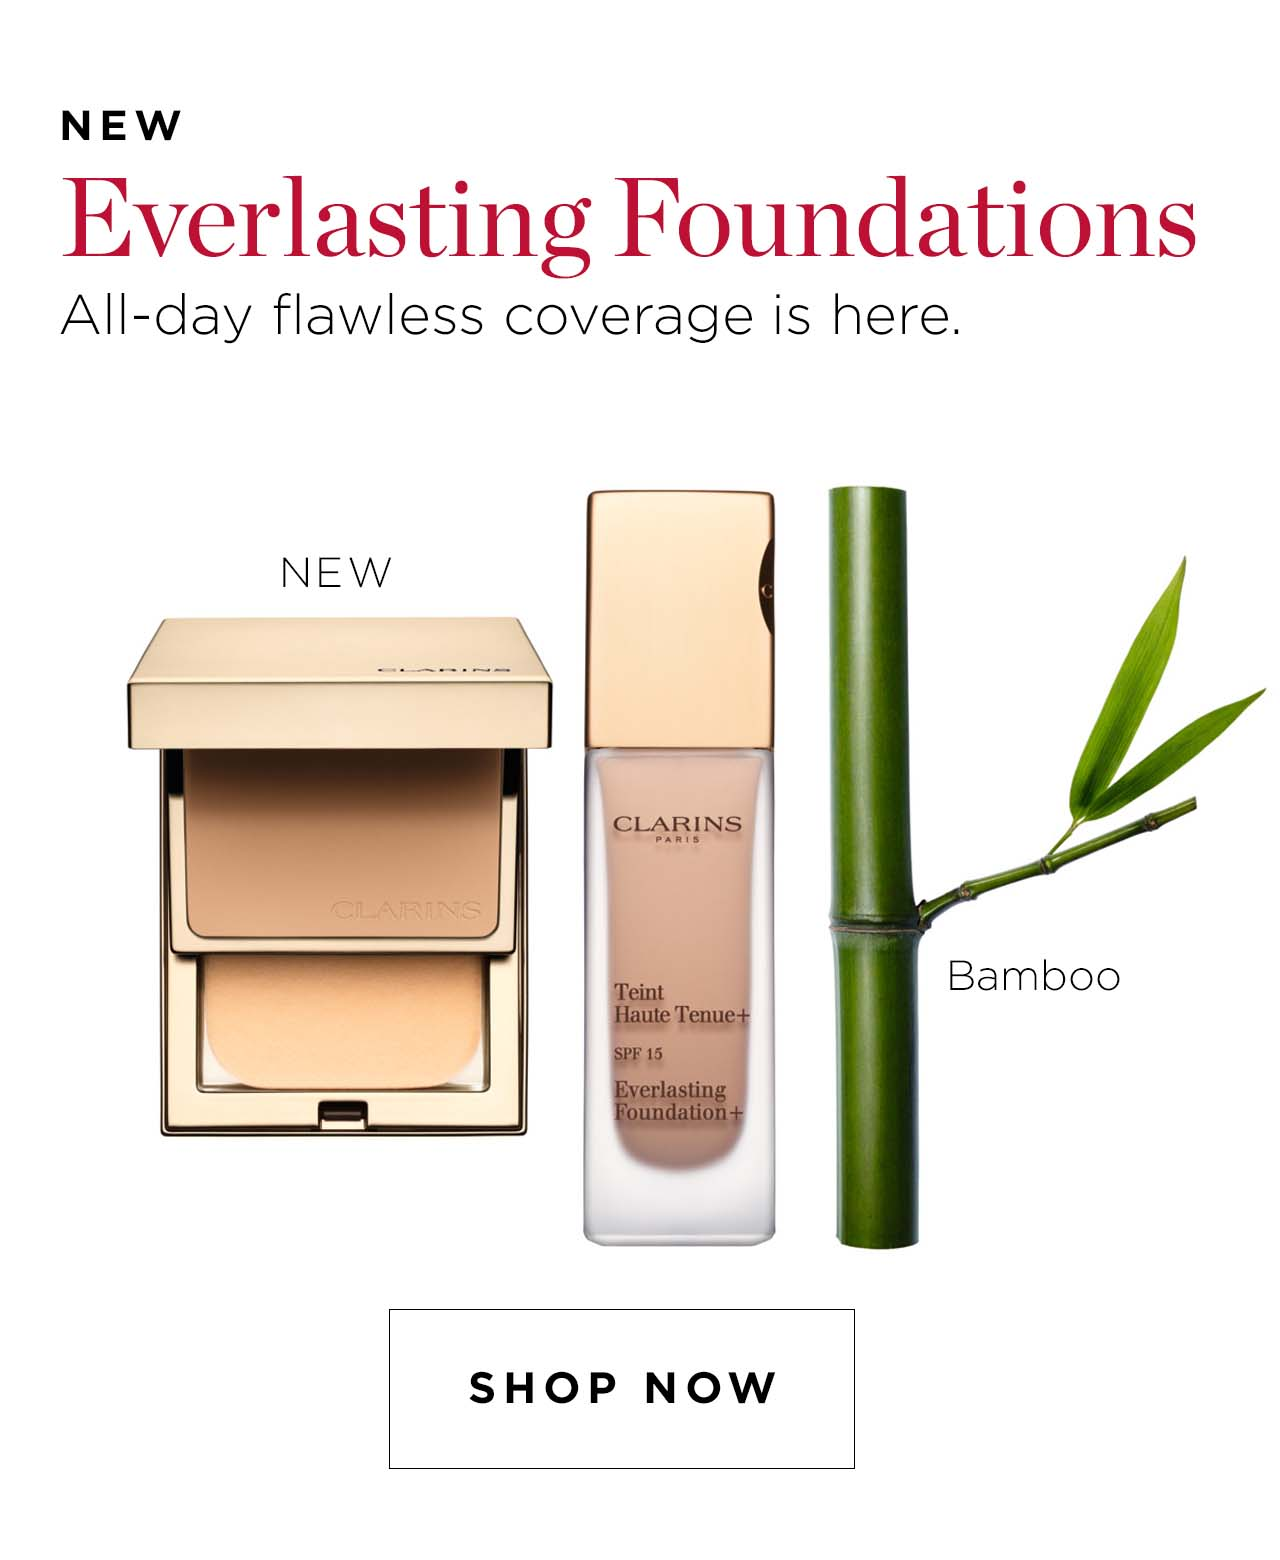 Clarins Everlasting Foundations all-day flawless coverage